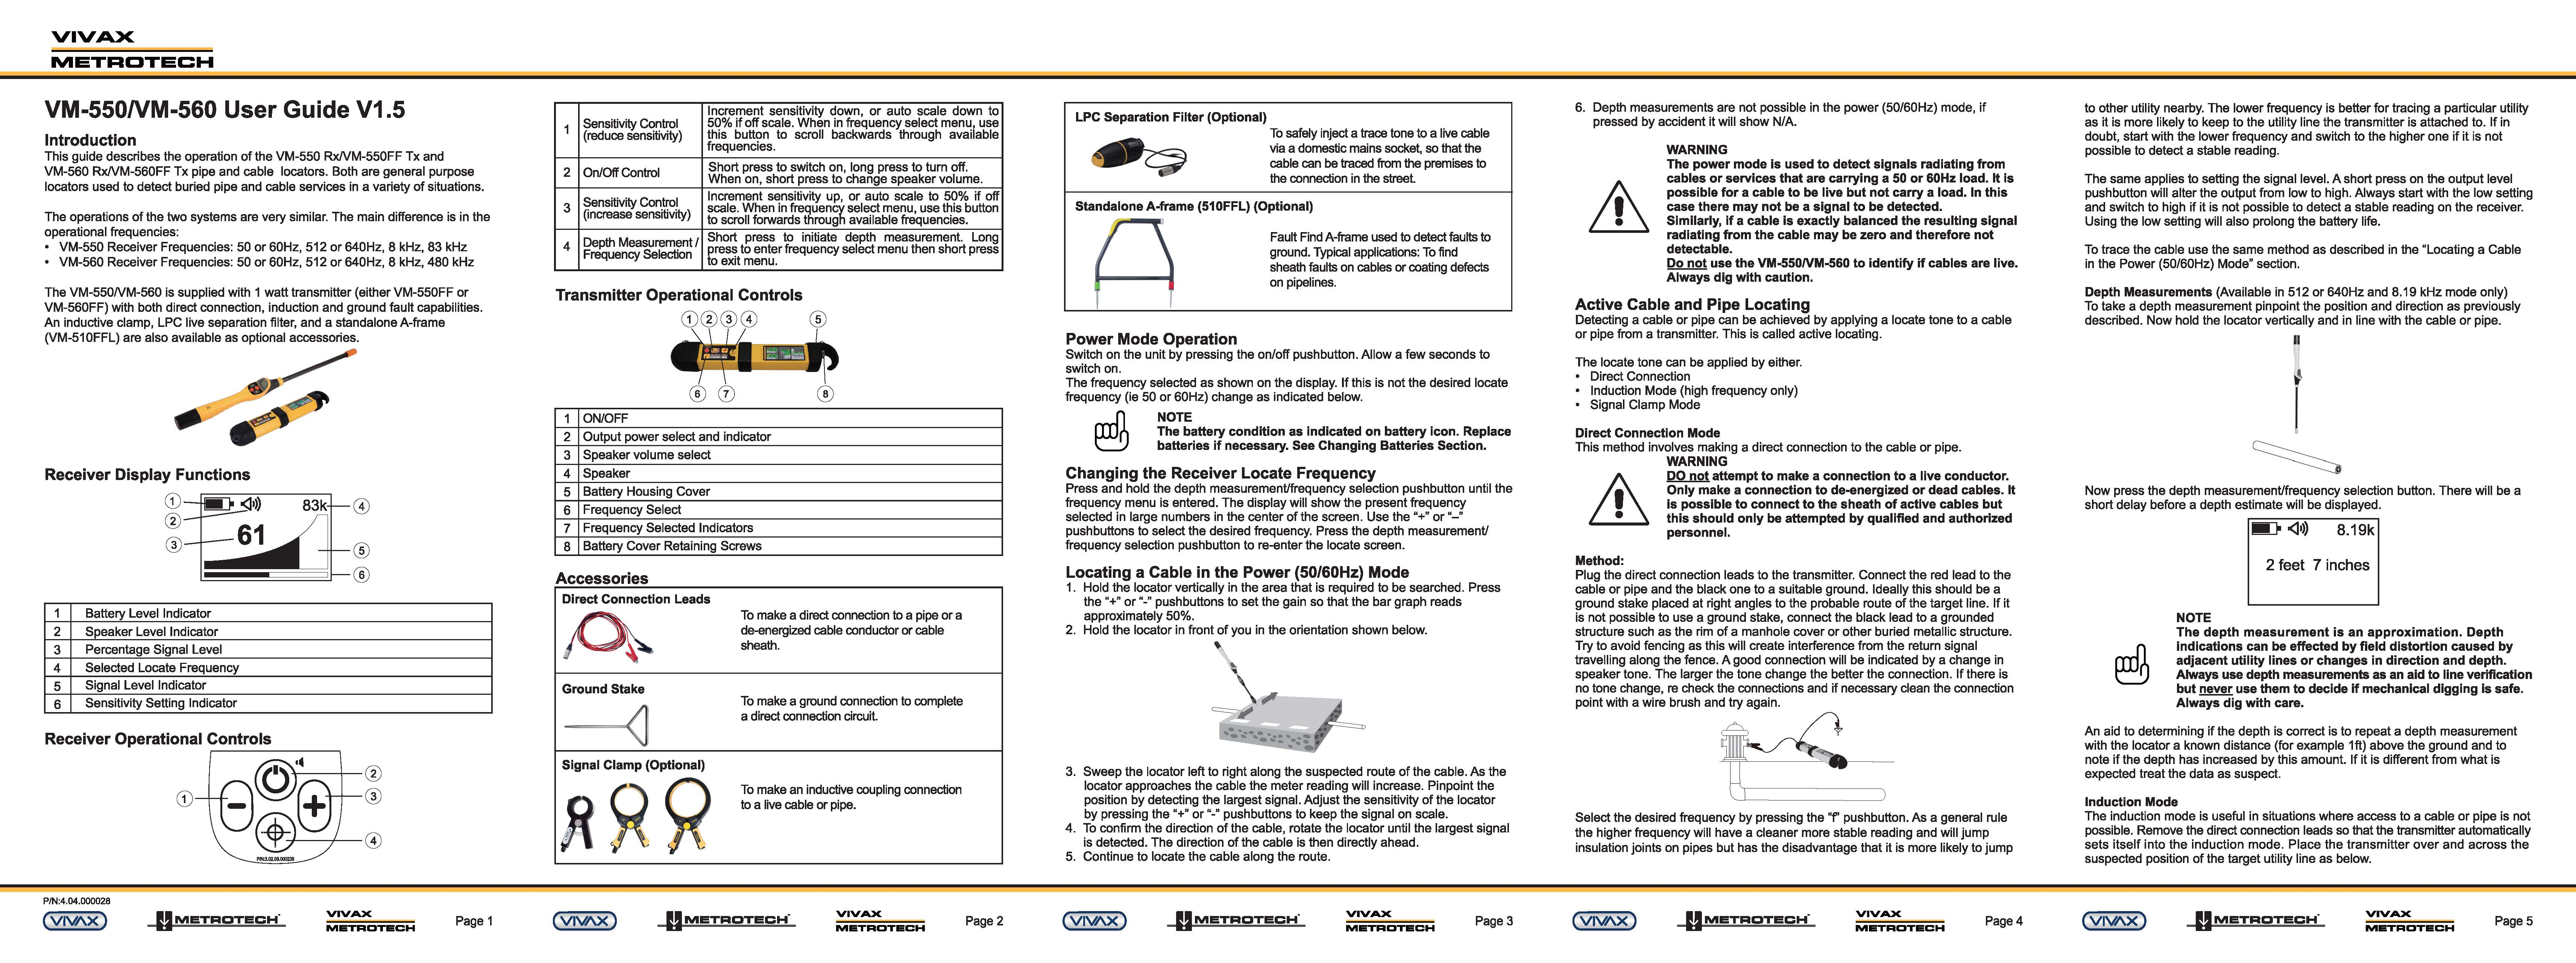 Underground Cable Detectors Price Pipe Locators For Sale Cctv Wiring Guide Download The Latest Product Manuals Pdfs